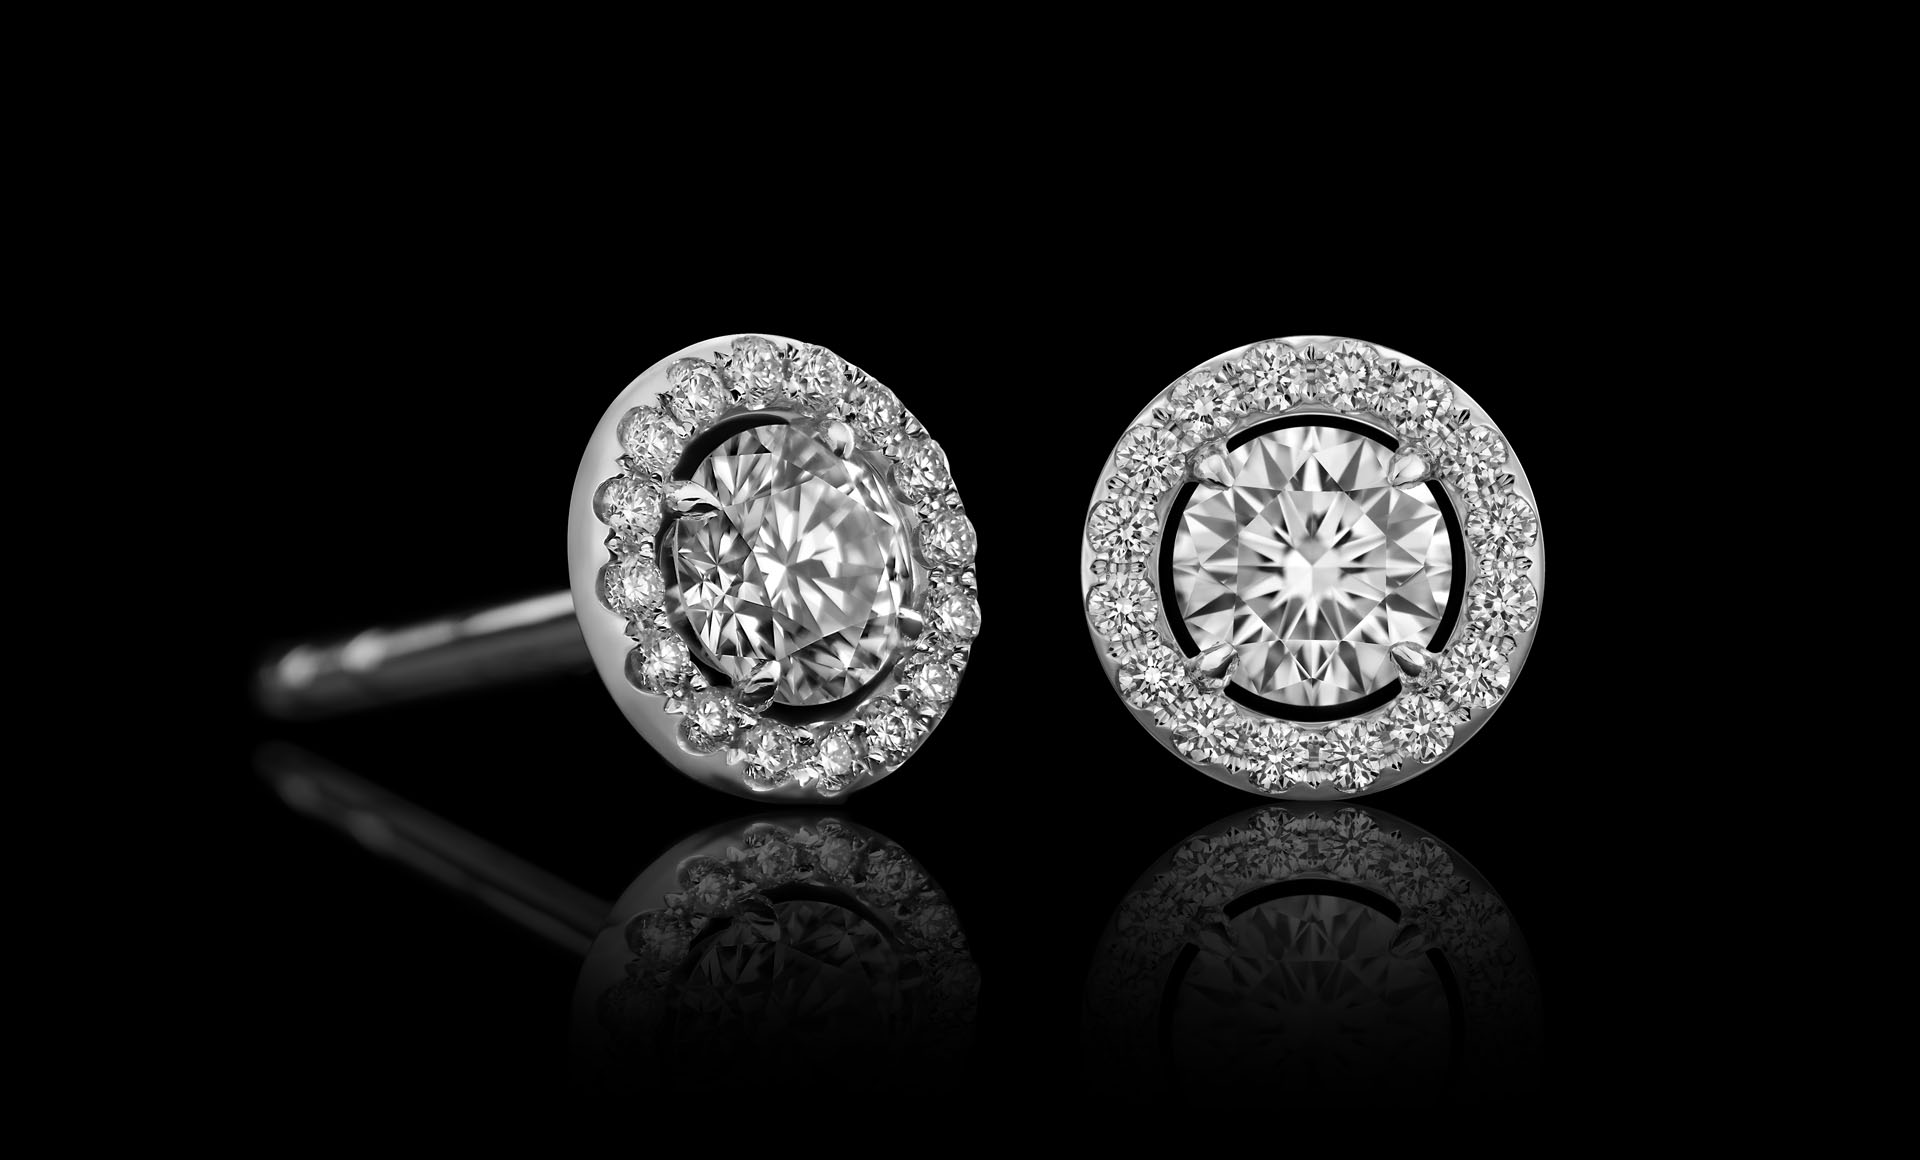 Montluc - Orbit No.2 diamond studs with center stone